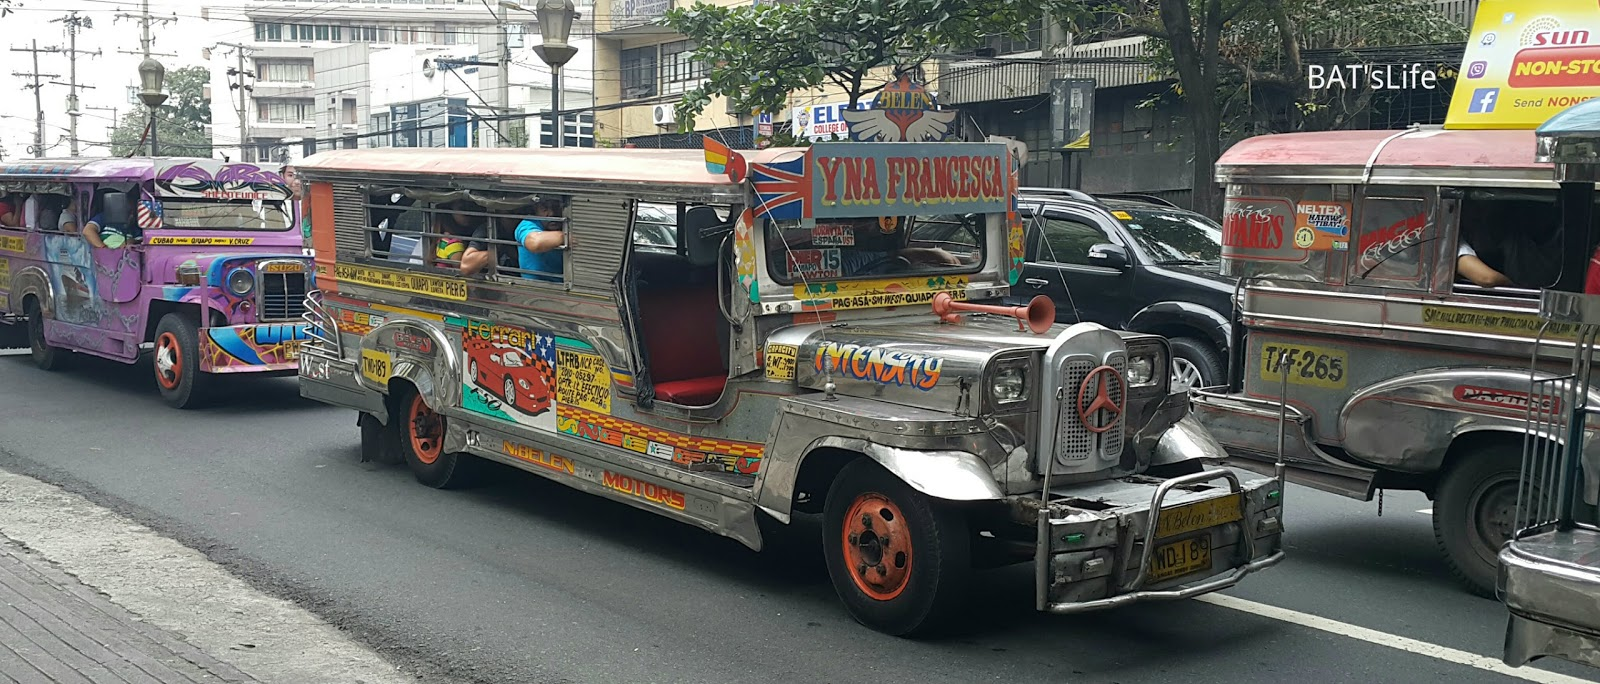 vintage jeepneys of iloilo The largest manufacturer of vintage style army jeepneys is in iloilo jeepney are known the fuel use of a 16-passenger jeepney to a 54-passenger air.